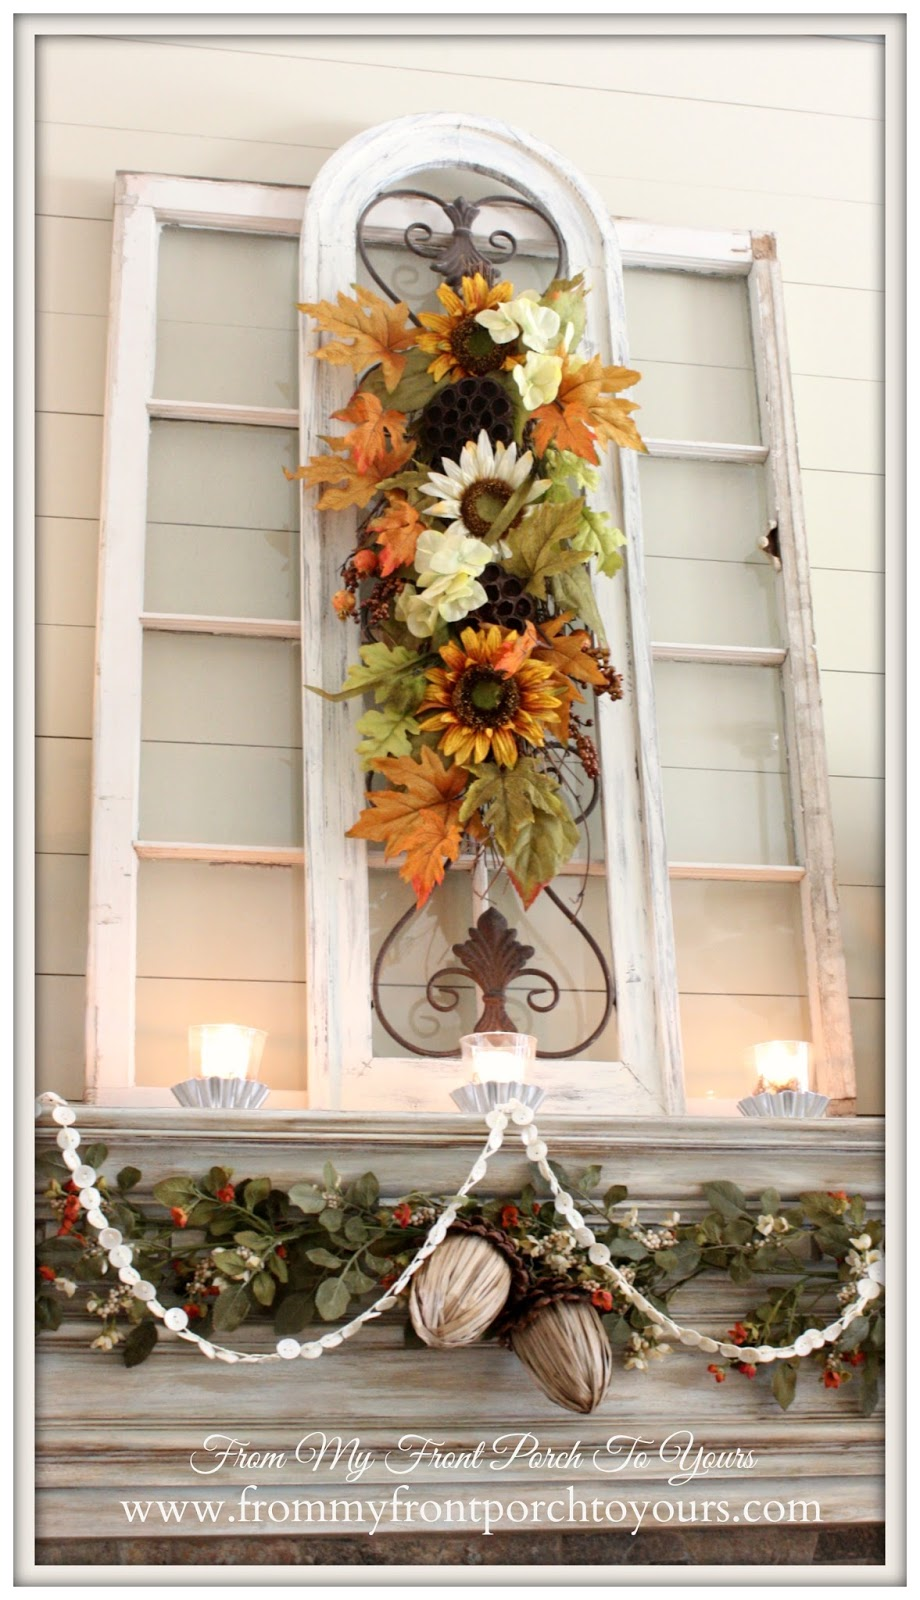 From My Front Porch To Yours- French Farmhouse Fall Mantel 2014